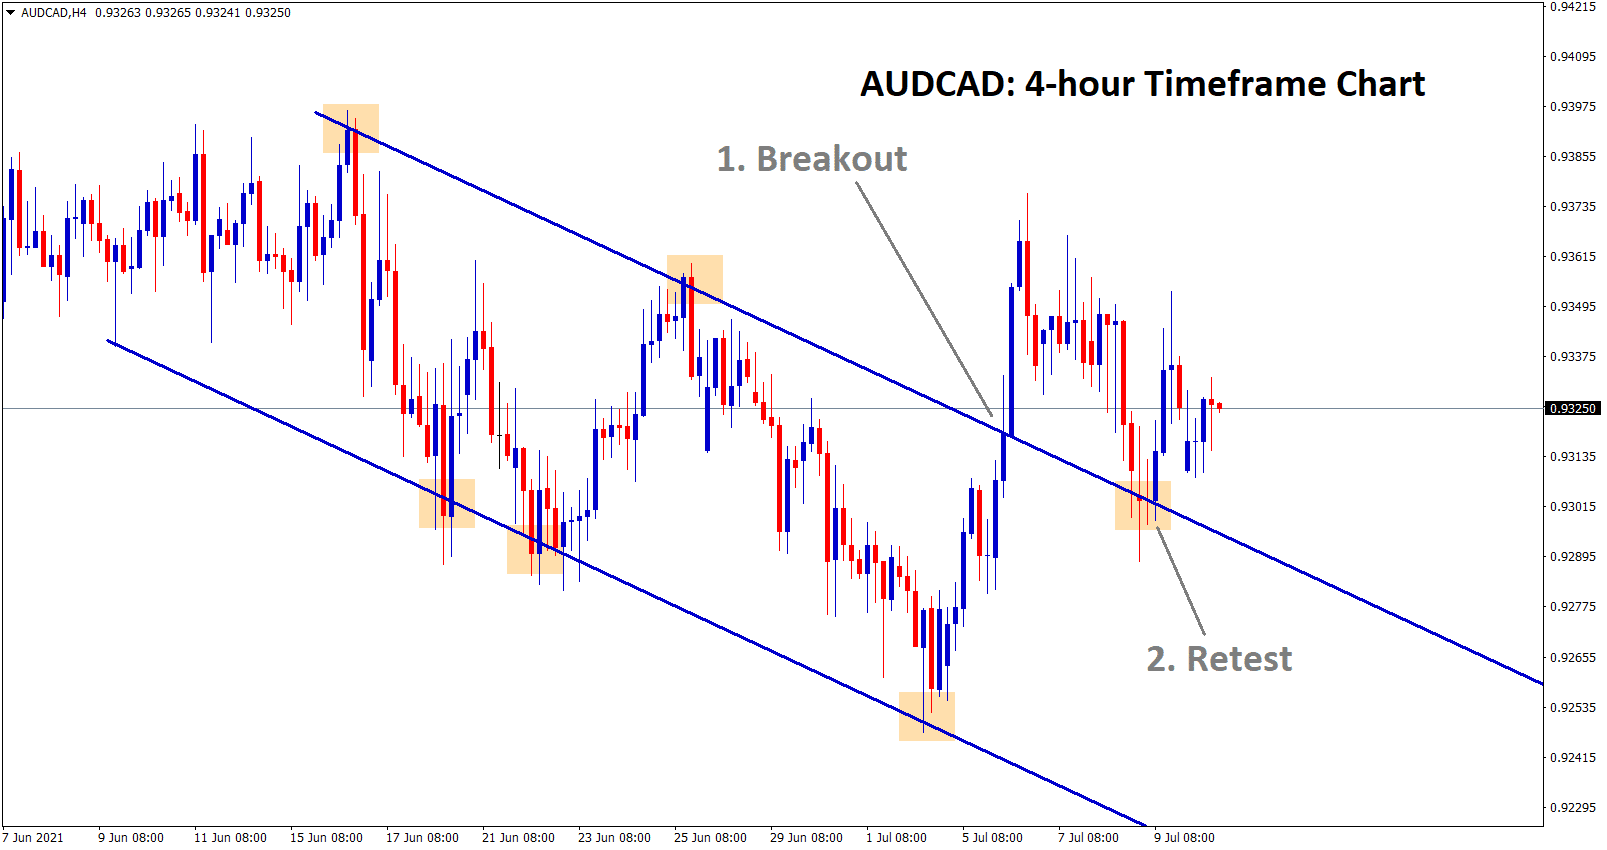 AUDCAD has broken and retested the descending channel now starts to bounce back